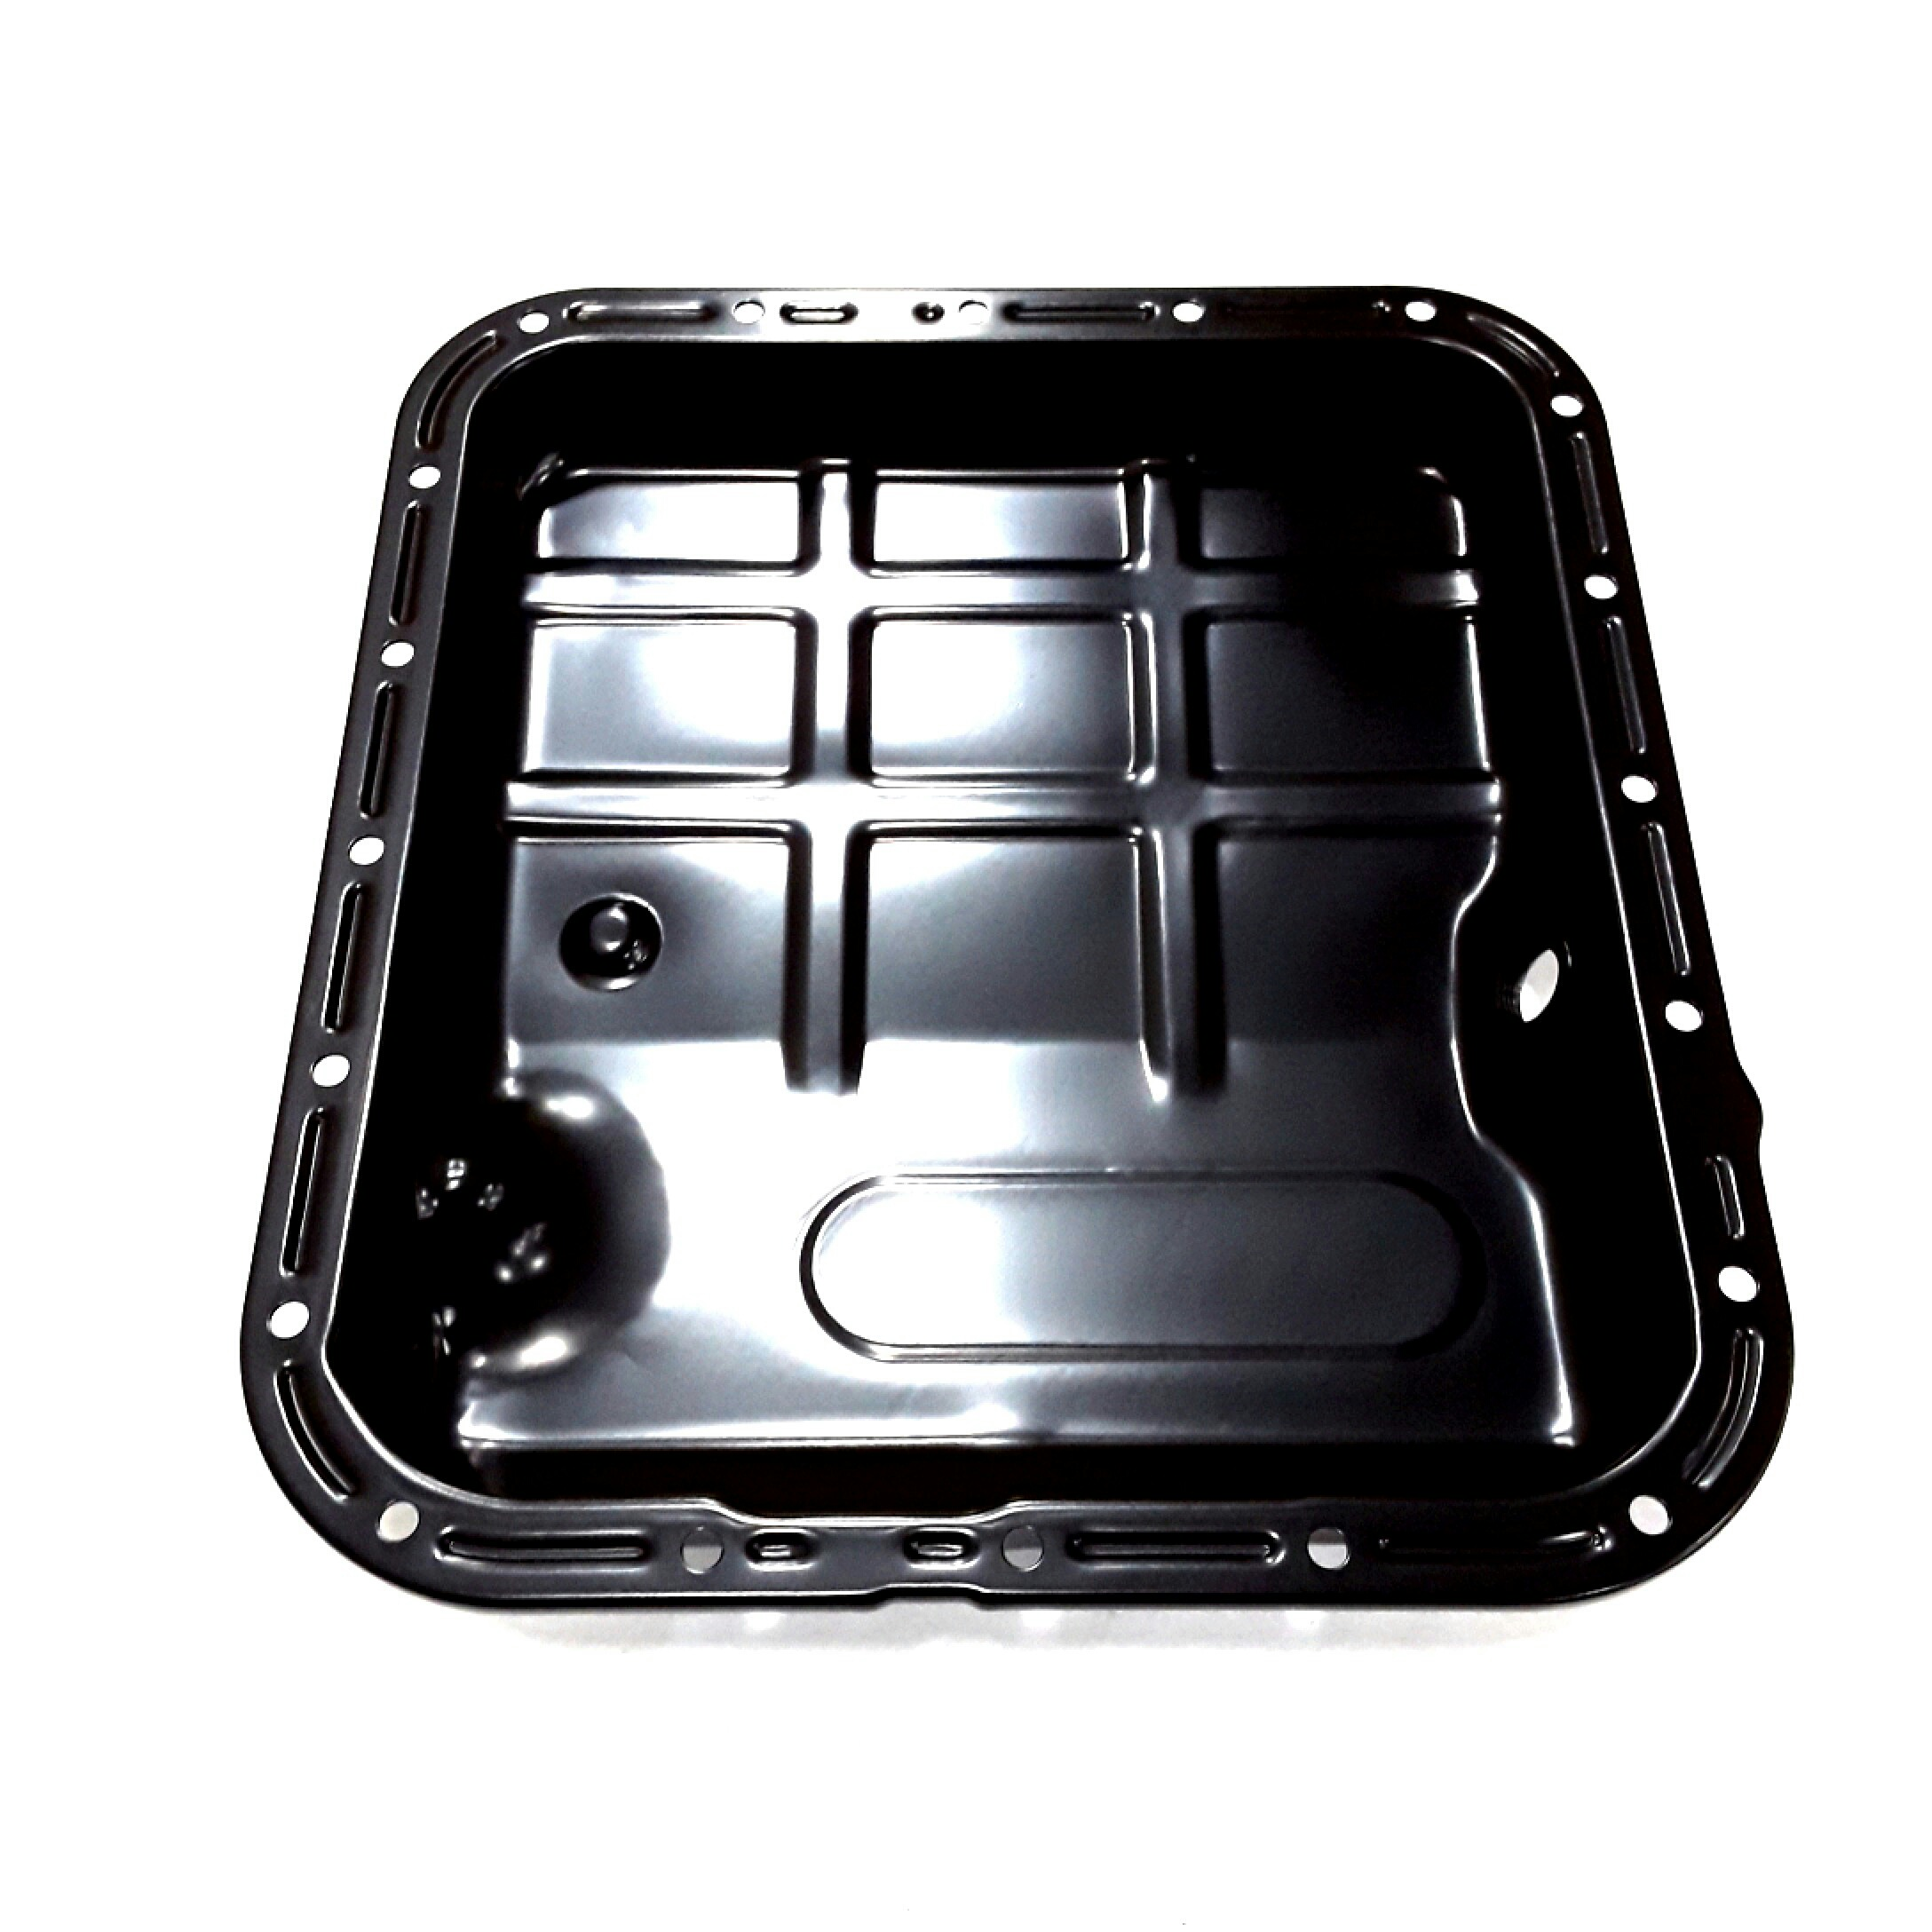 2008 Subaru Outback Transmission: 2008 Subaru Forester Oil Pan Complete-transmission. Case